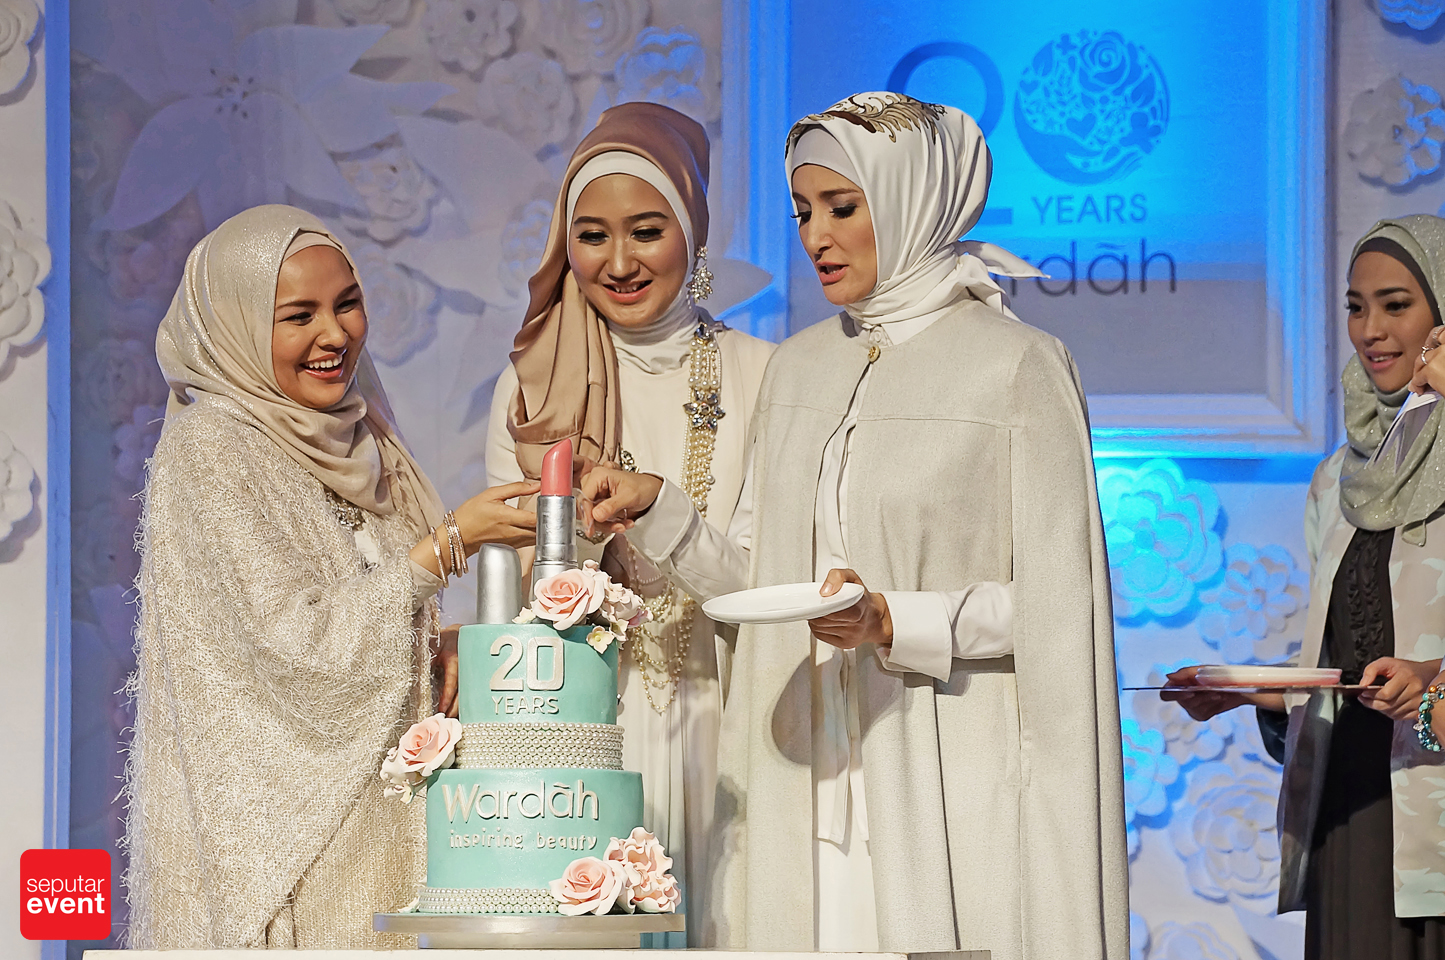 The 20th Anniversary of Wardah (65).JPG